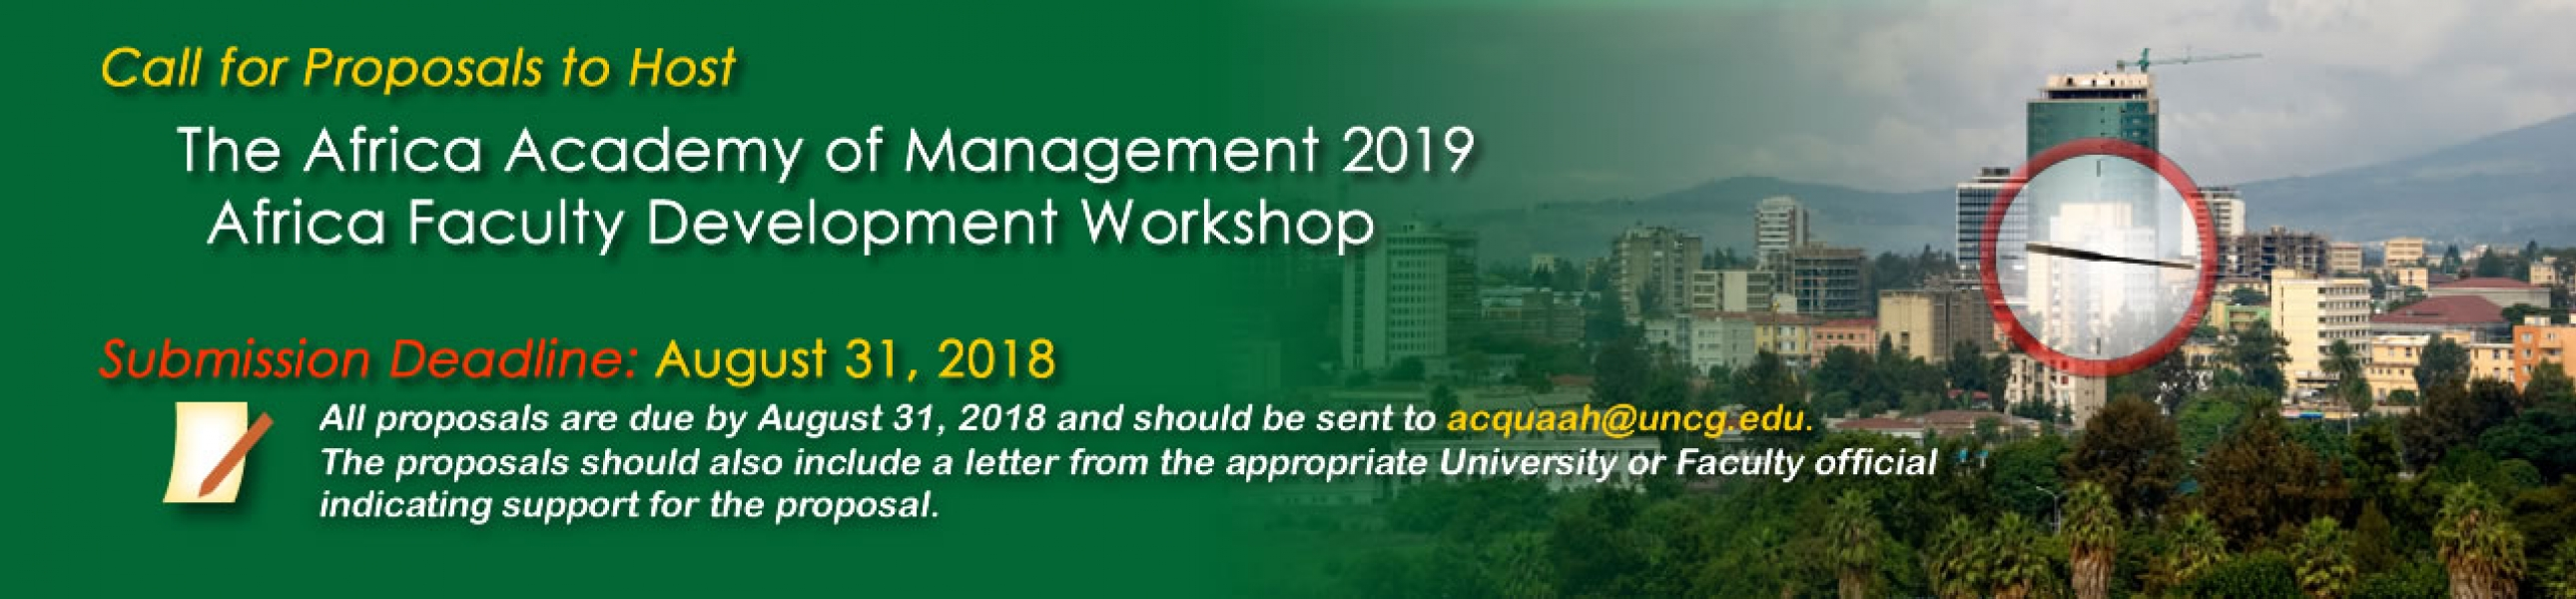 The Africa Academy of Management 2019 Africa Faculty Development Workshop